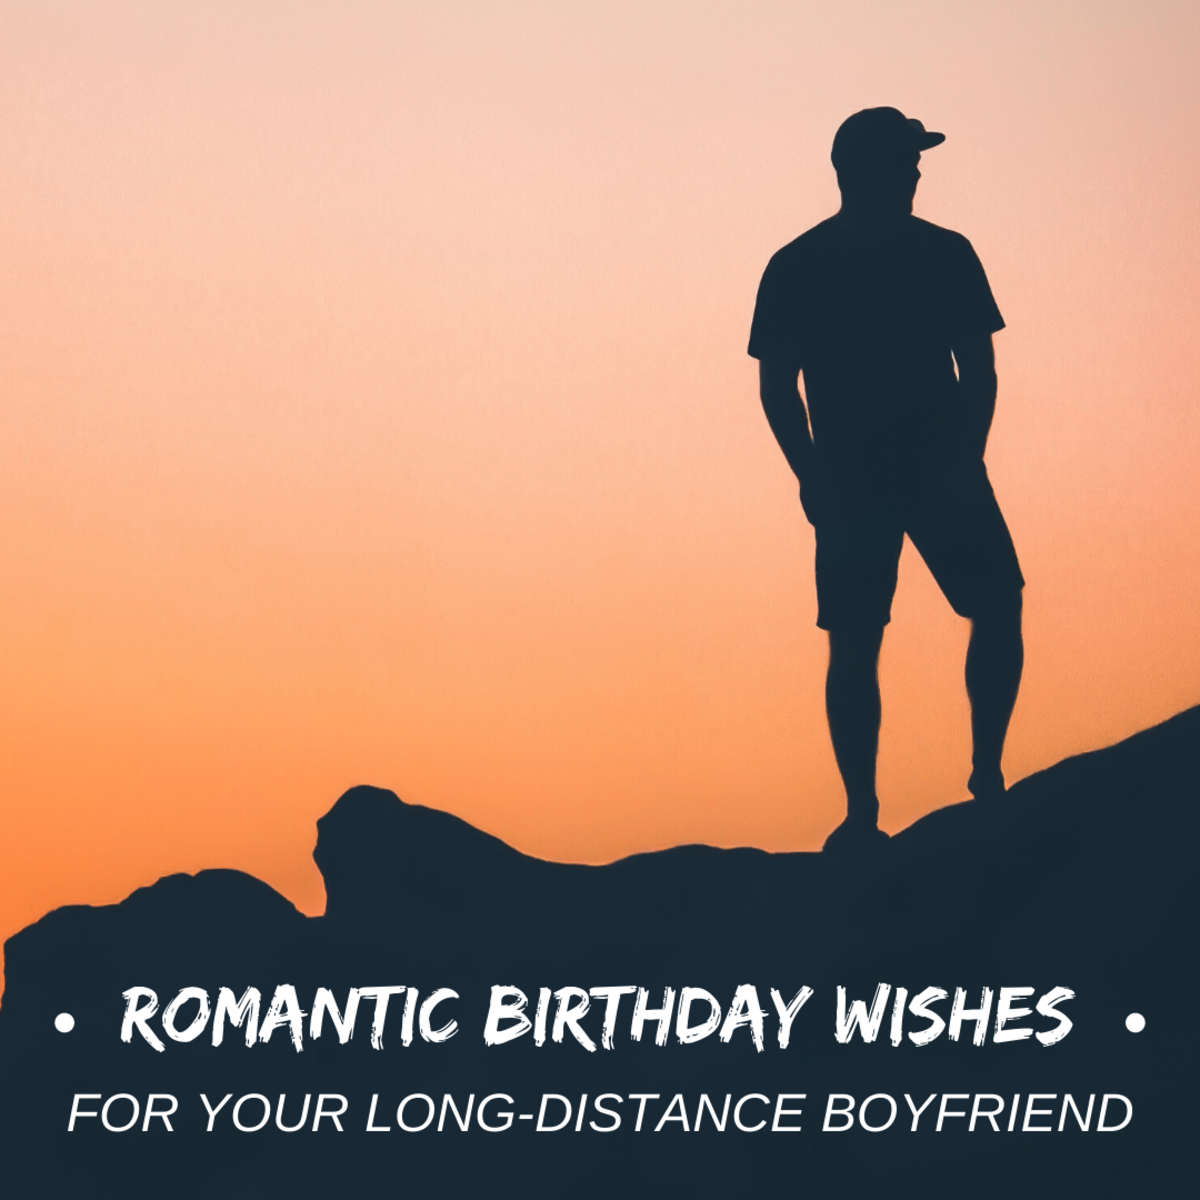 What should you say to your man on his special day?